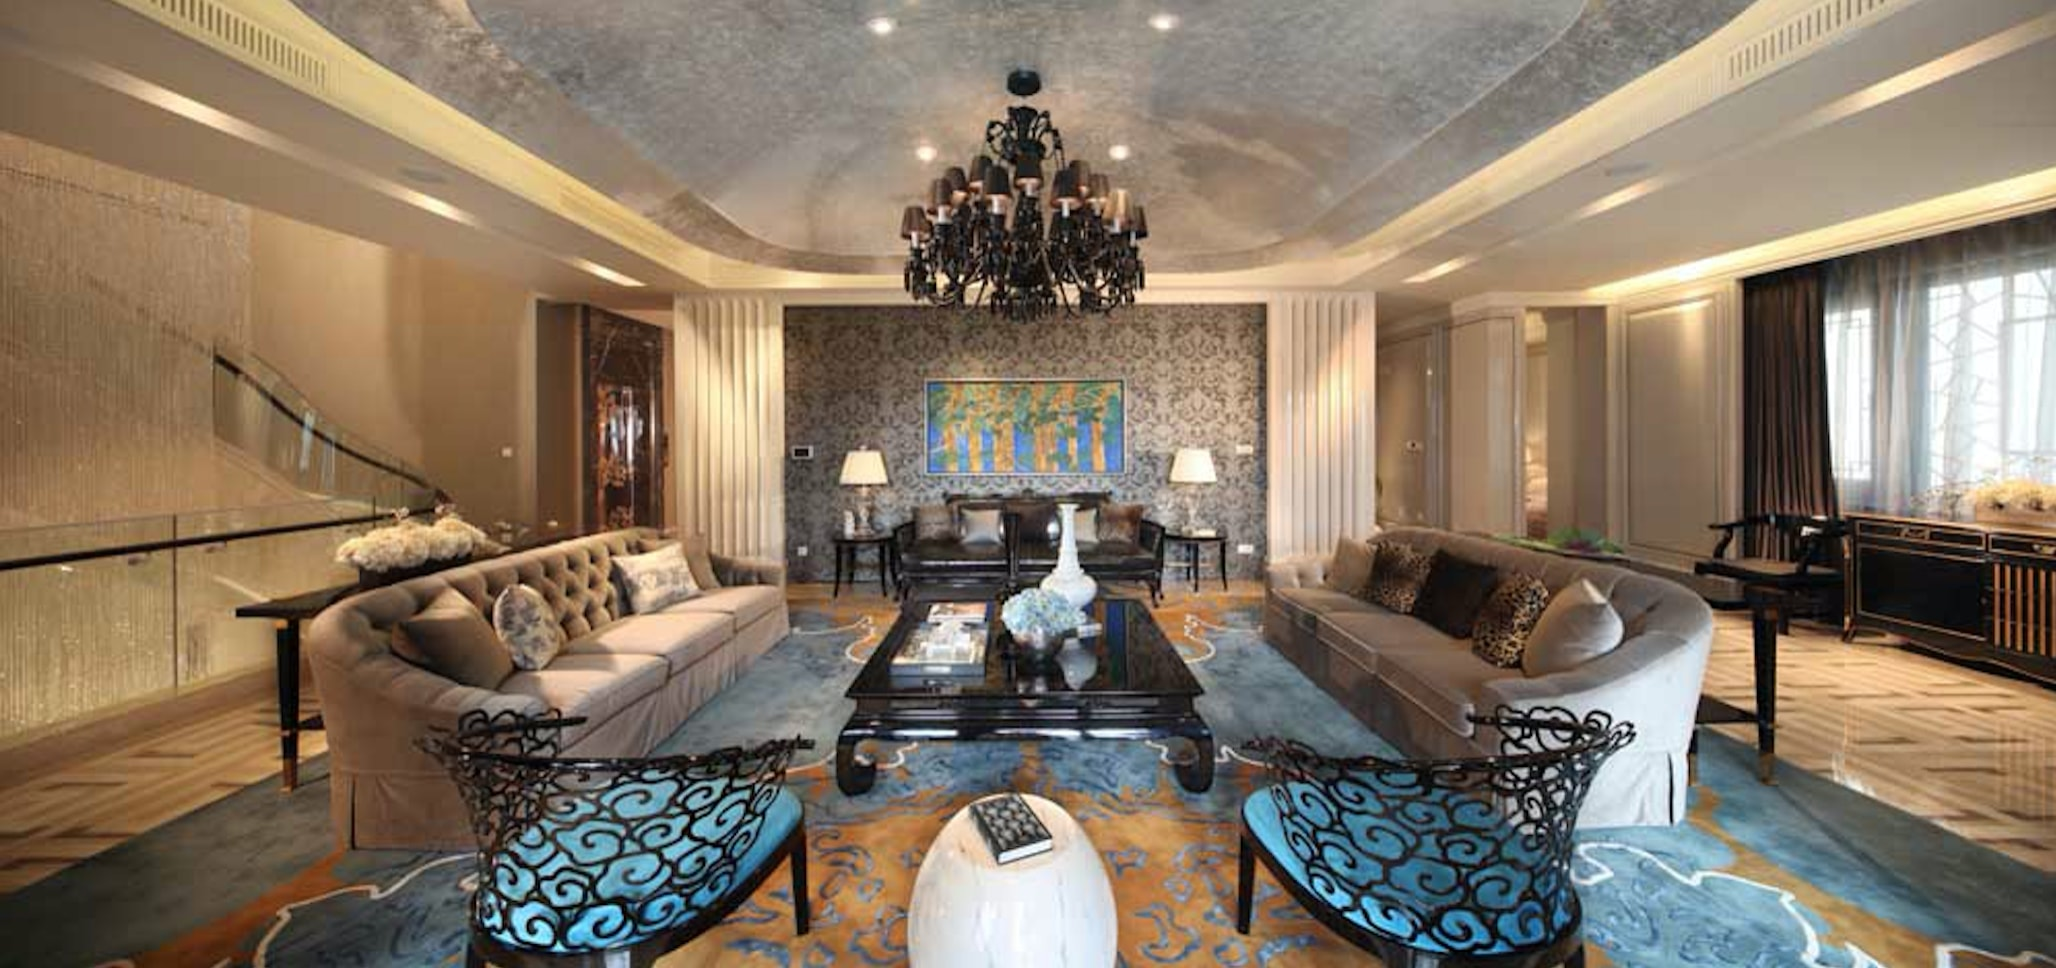 Why China's super wealthy shun Western-looking homes - CNN Style on